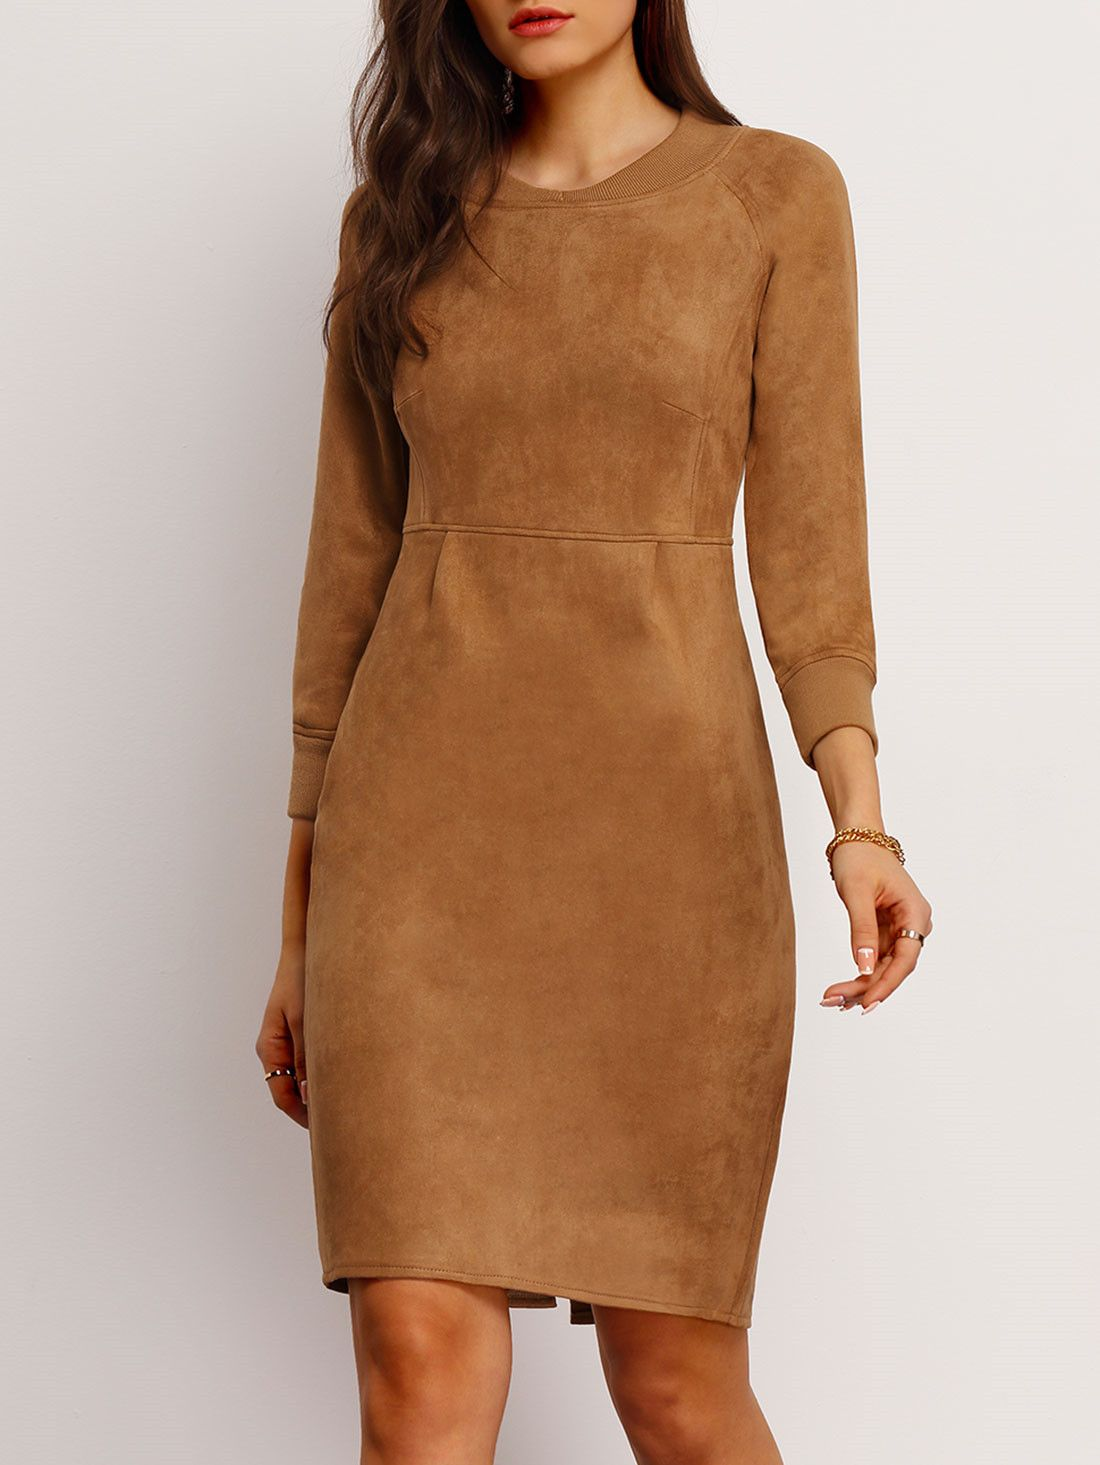 d3d24961b368 Khaki Long Sleeve Slim Split Suede Dress 36.39